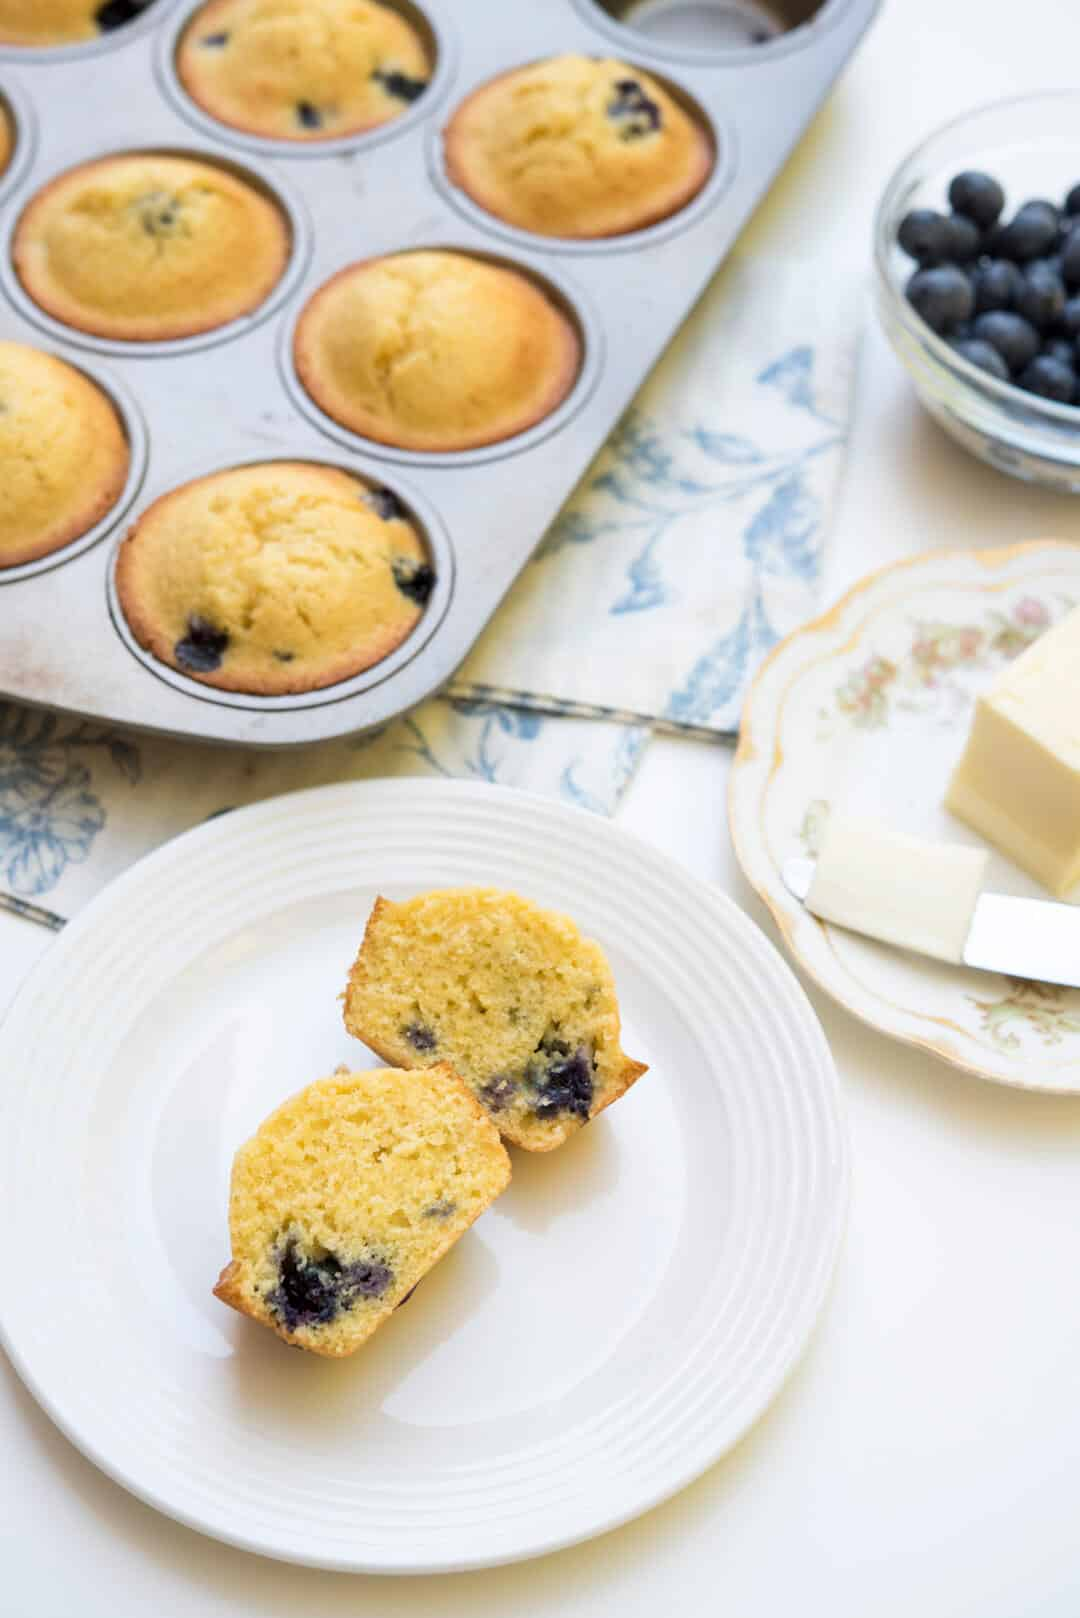 These Blueberry Cornmeal Muffins have a pretty yellow hue and a satisfying bite. Delicious served warm and slathered with butter!